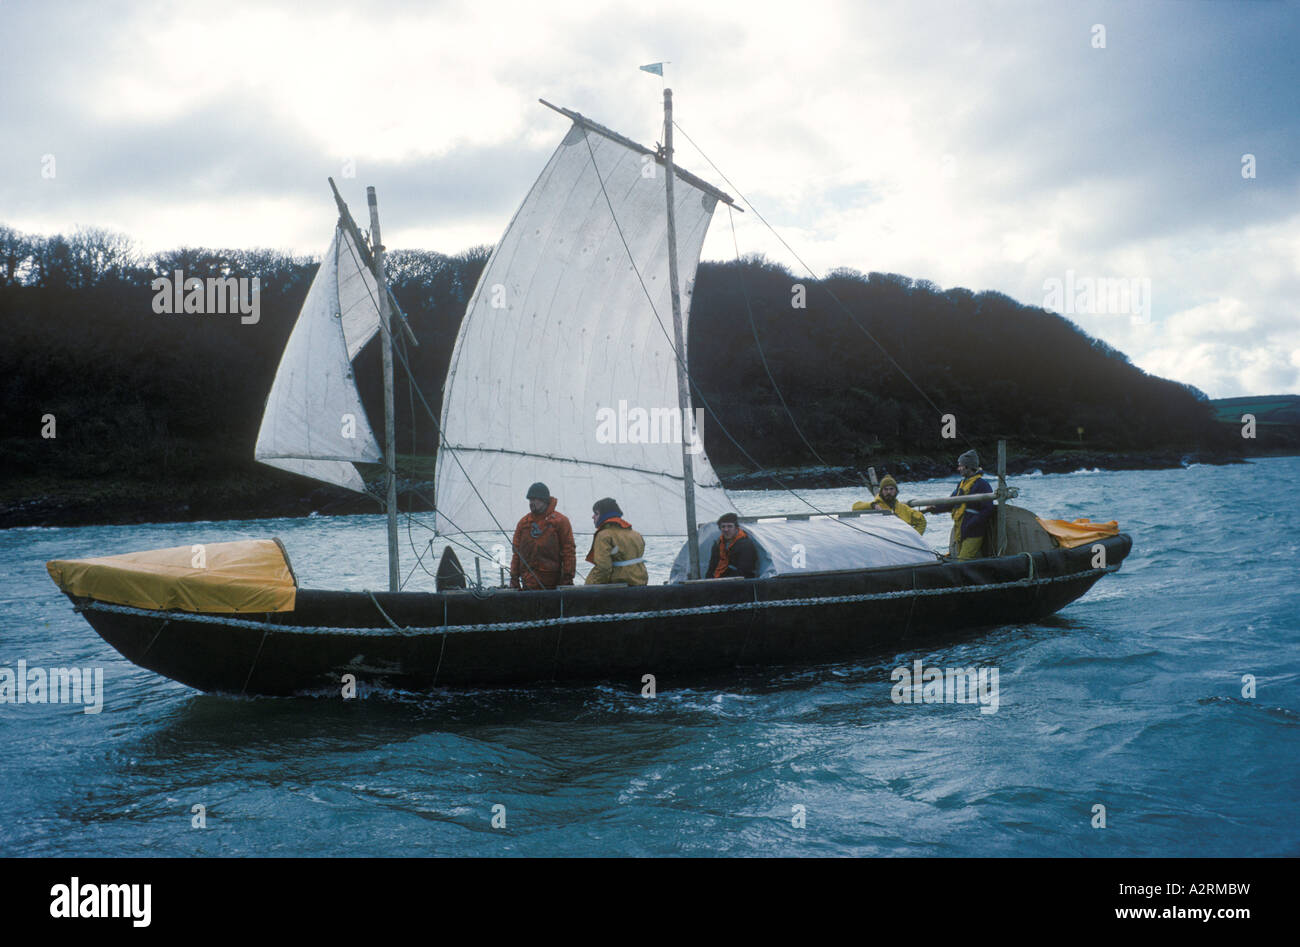 Tim Severin The Voyage of Brendan the Navigator 1976 sailed to North America in a leather boat. Sea trials southern - Stock Image